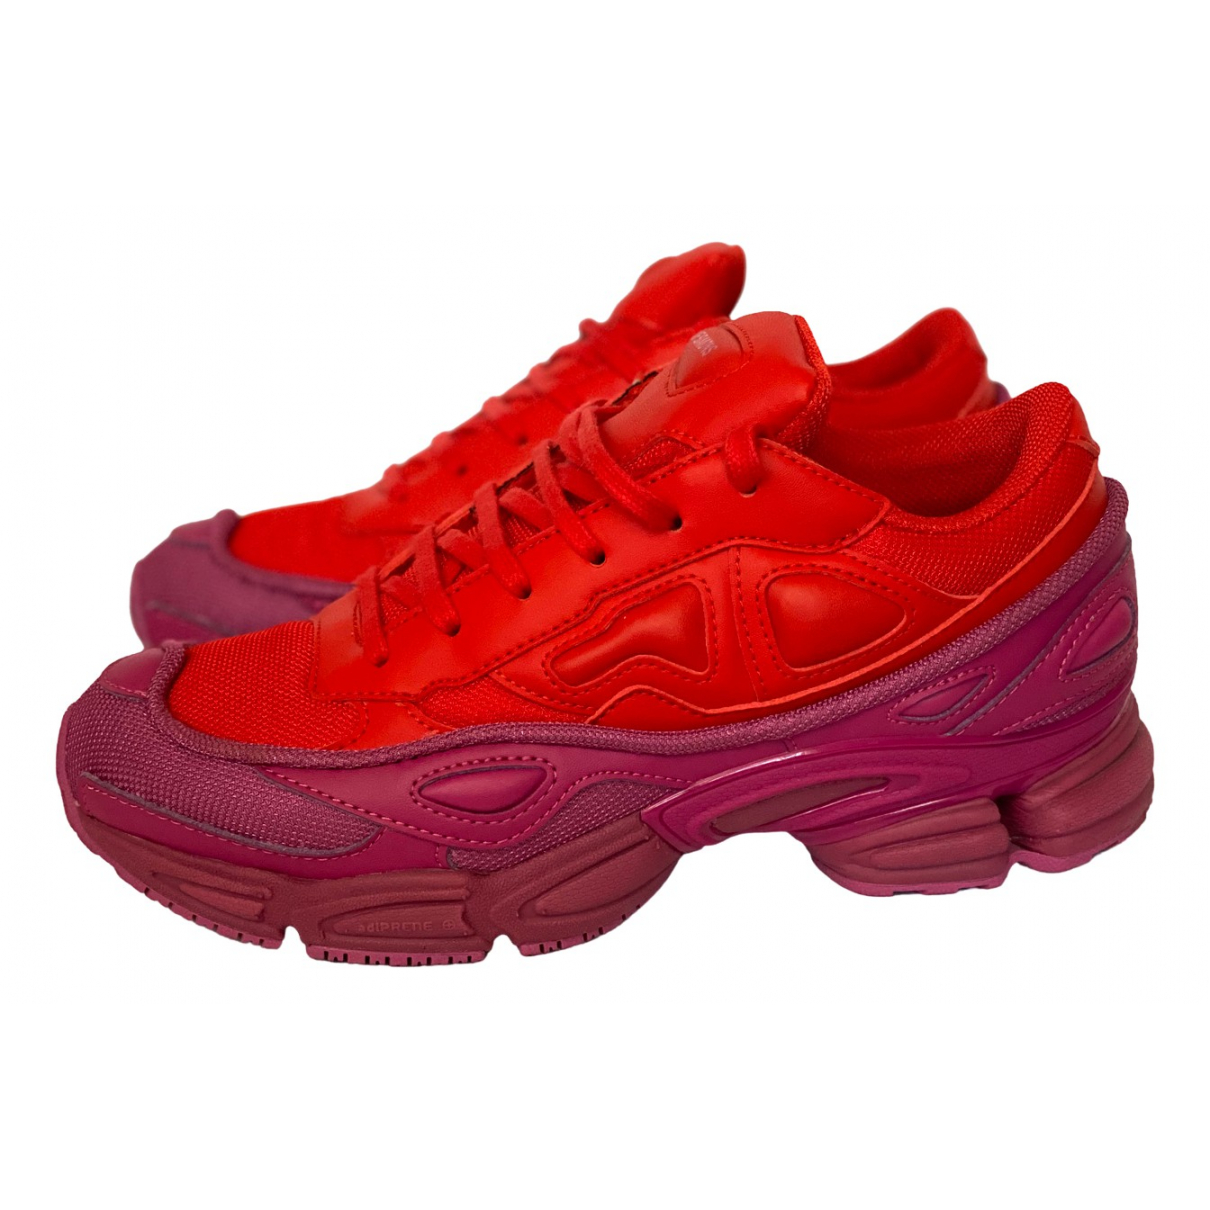 Adidas X Raf Simons Ozweego 2 Red Leather Trainers for Women 38 EU